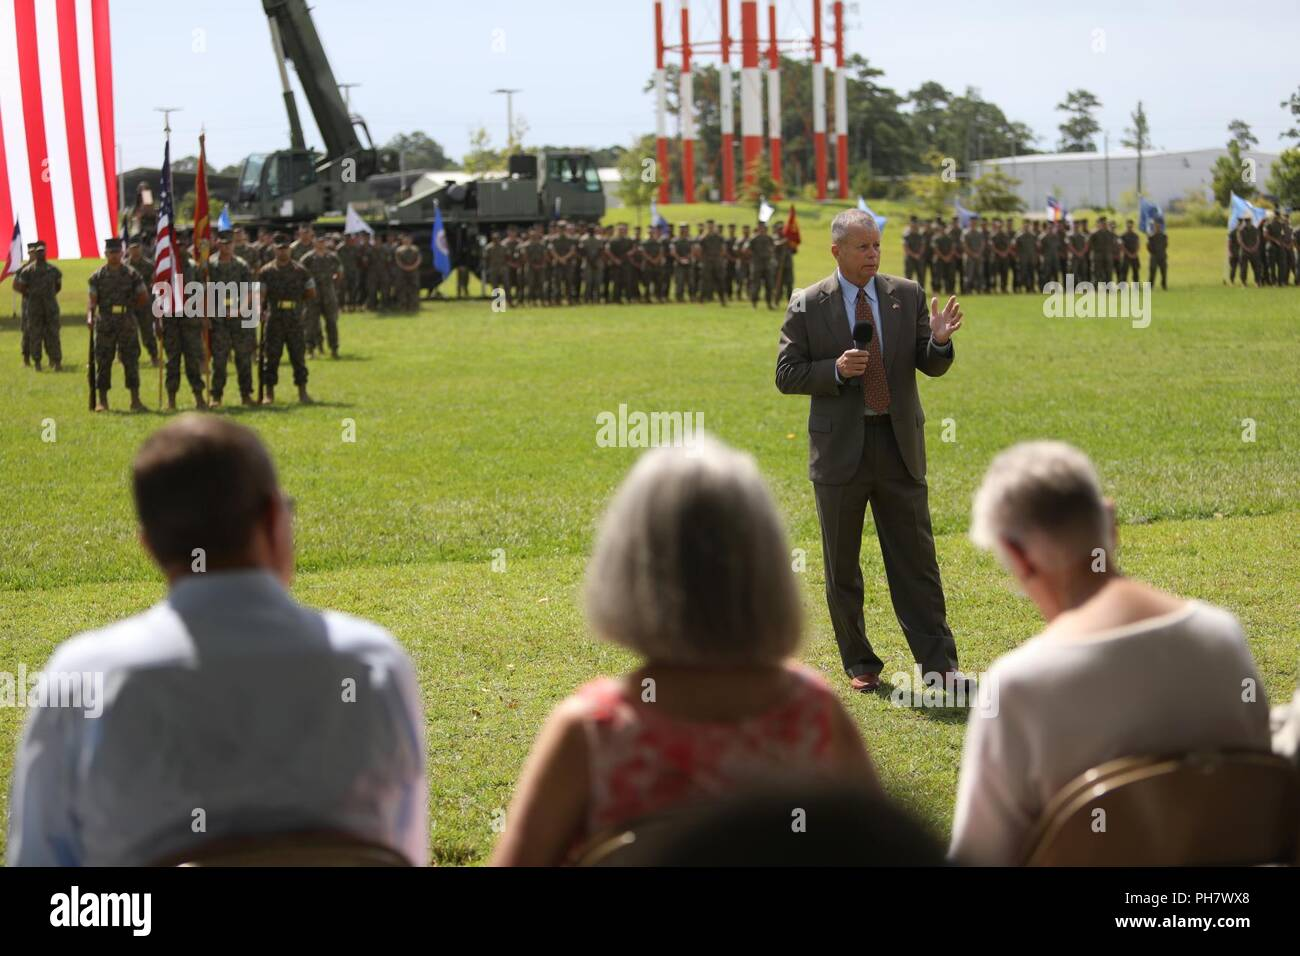 Retired U.S. Marine Corps Lt. Gen. Frank A. Panter, addresses Marines, family and friends during Maj. Gen. Niel E. Nelson's retirement ceremony at Camp Lejeune, N.C., June 26, 2018. The ceremony was held in honor of Maj. Gen. Nelson's 35 years of honorable and meritorious service. Stock Photo